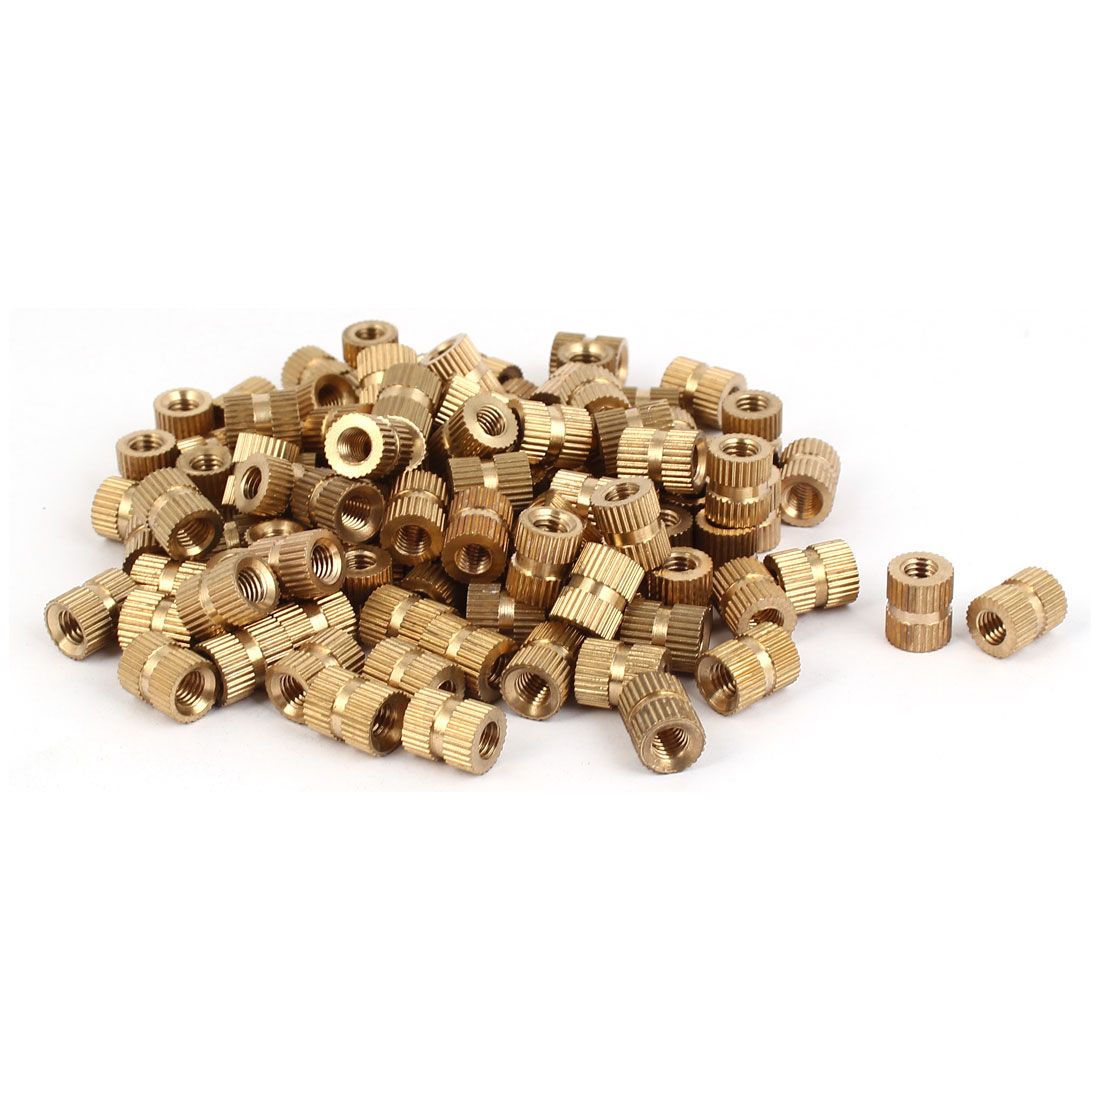 M5 x 10mm Female Thread Brass Knurled Threaded Insert Embedment Nuts 100PCS